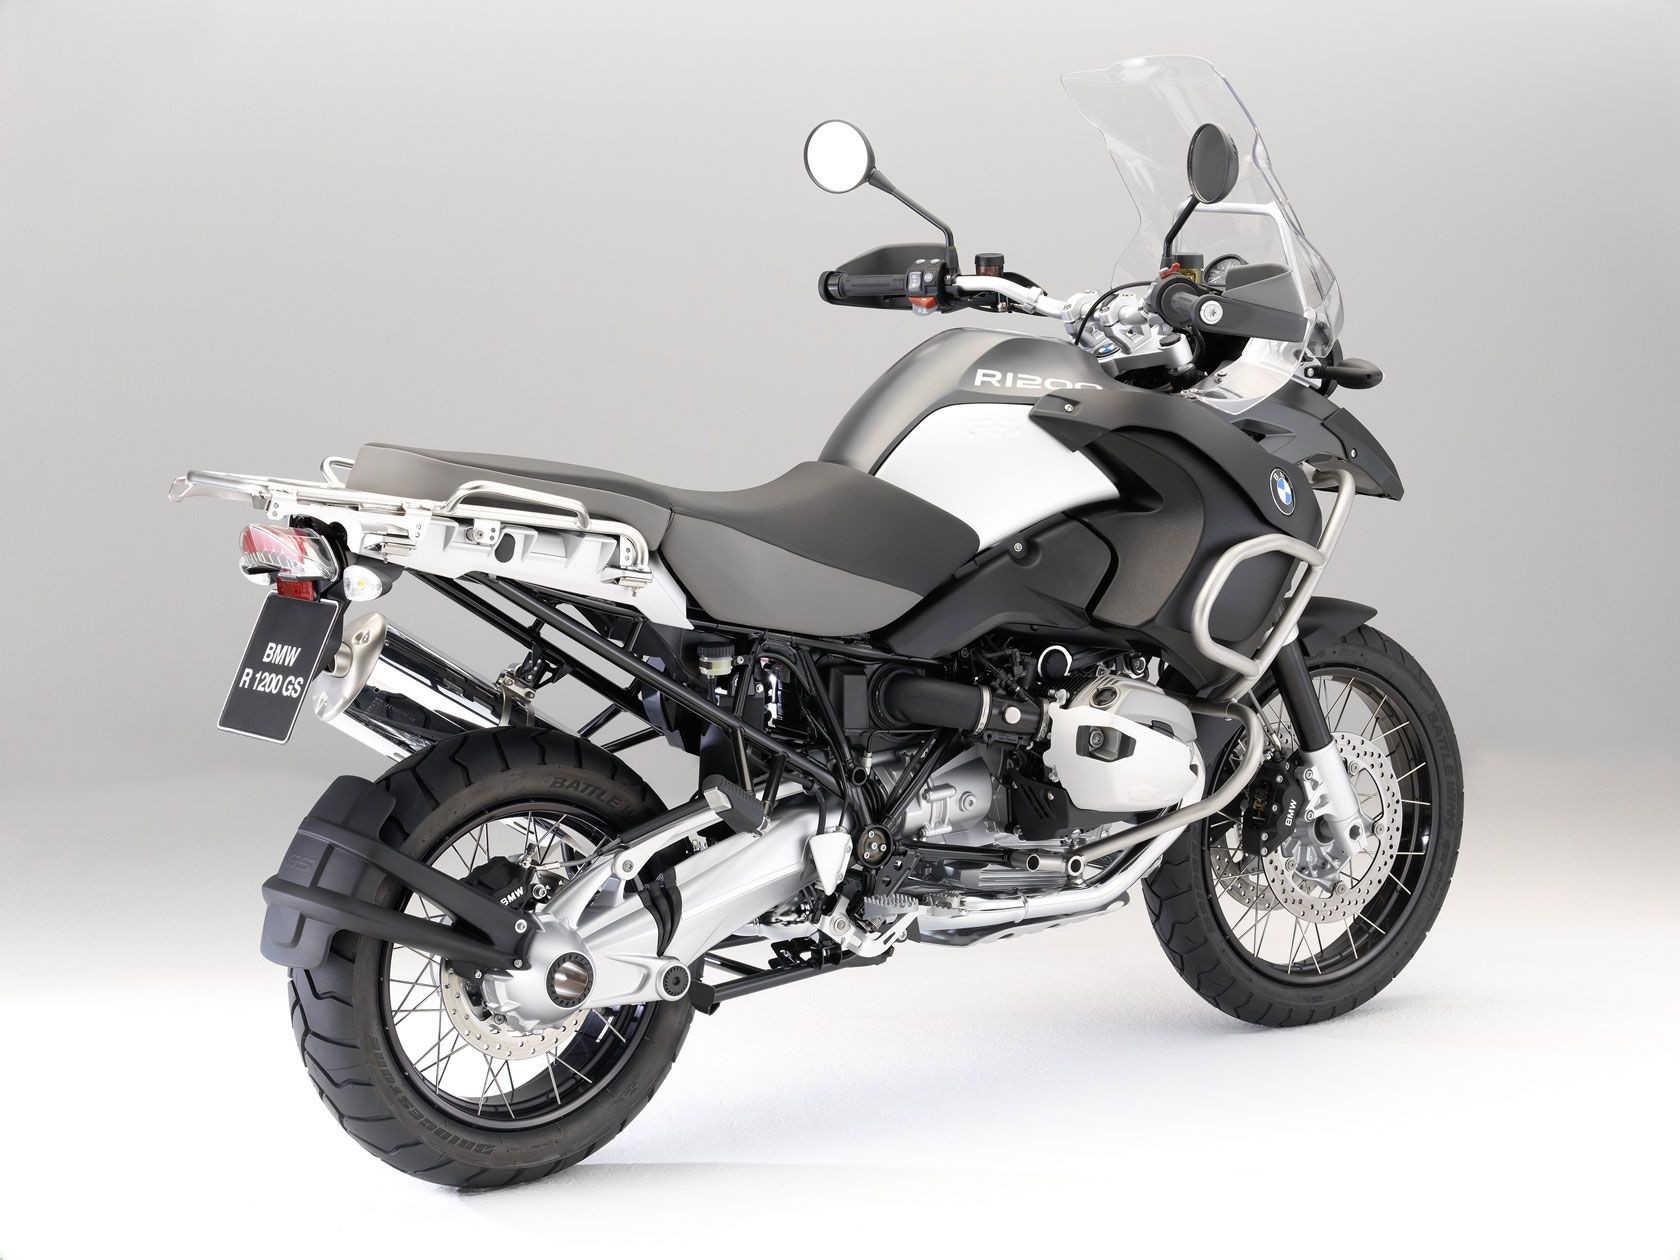 170cf4781c307ac4cd2d4e1011693f15 Exciting Bmw R 1200 Cl forum Cars Trend